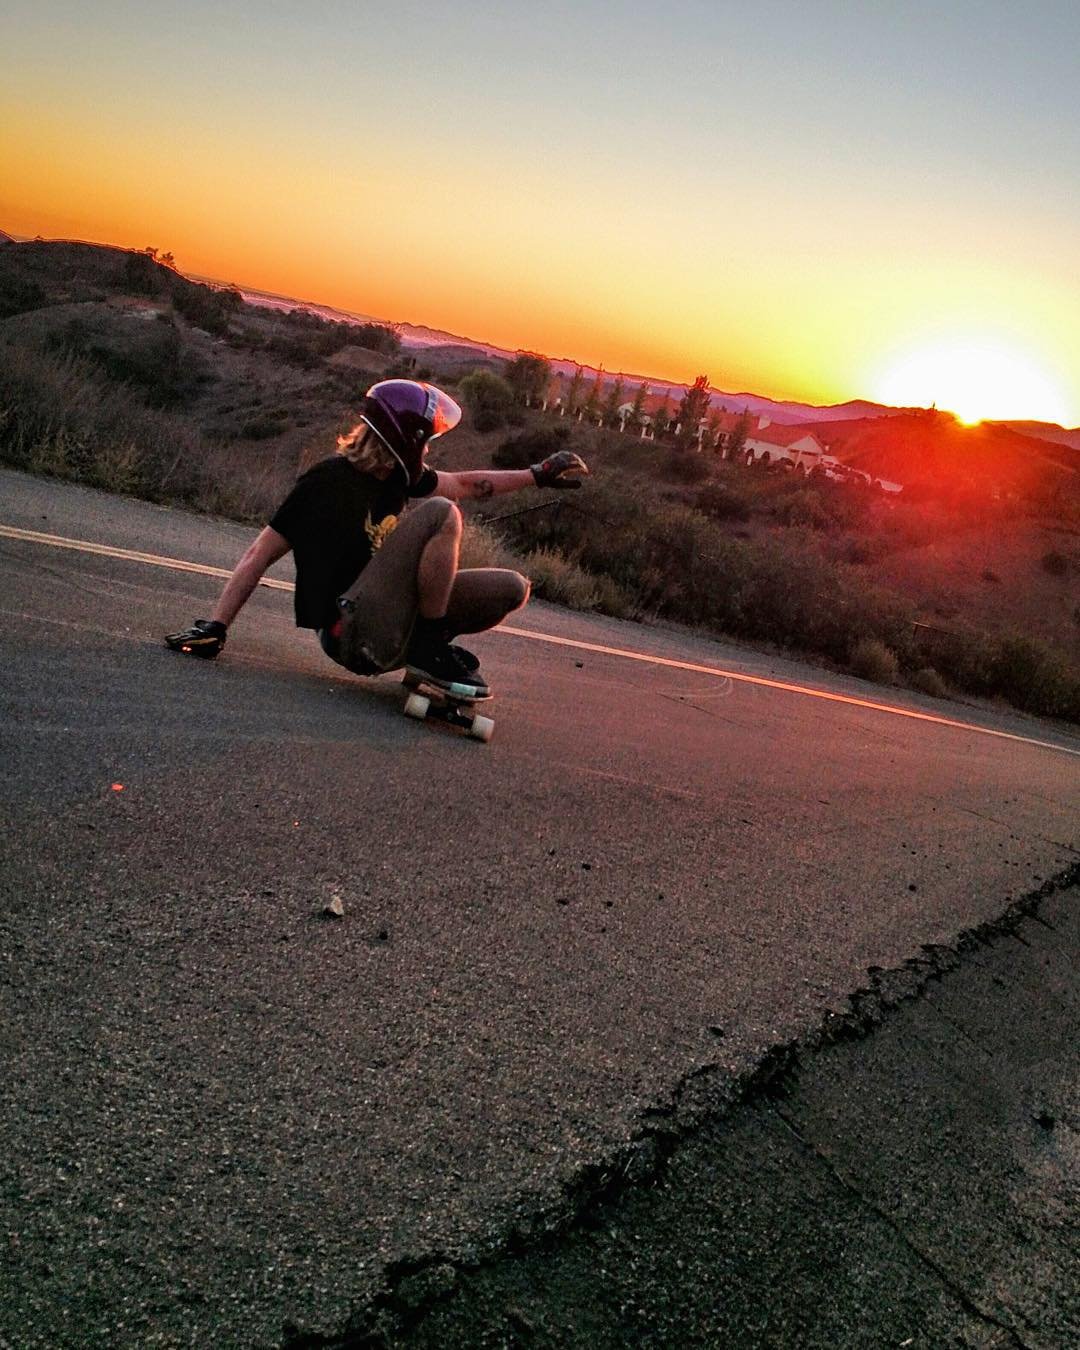 Slippin' into the sunset, team rider Lonnie Leonelli (@lonniesk8) puts the day to rest. The weekend is upon us, don't miss it, #goskate!